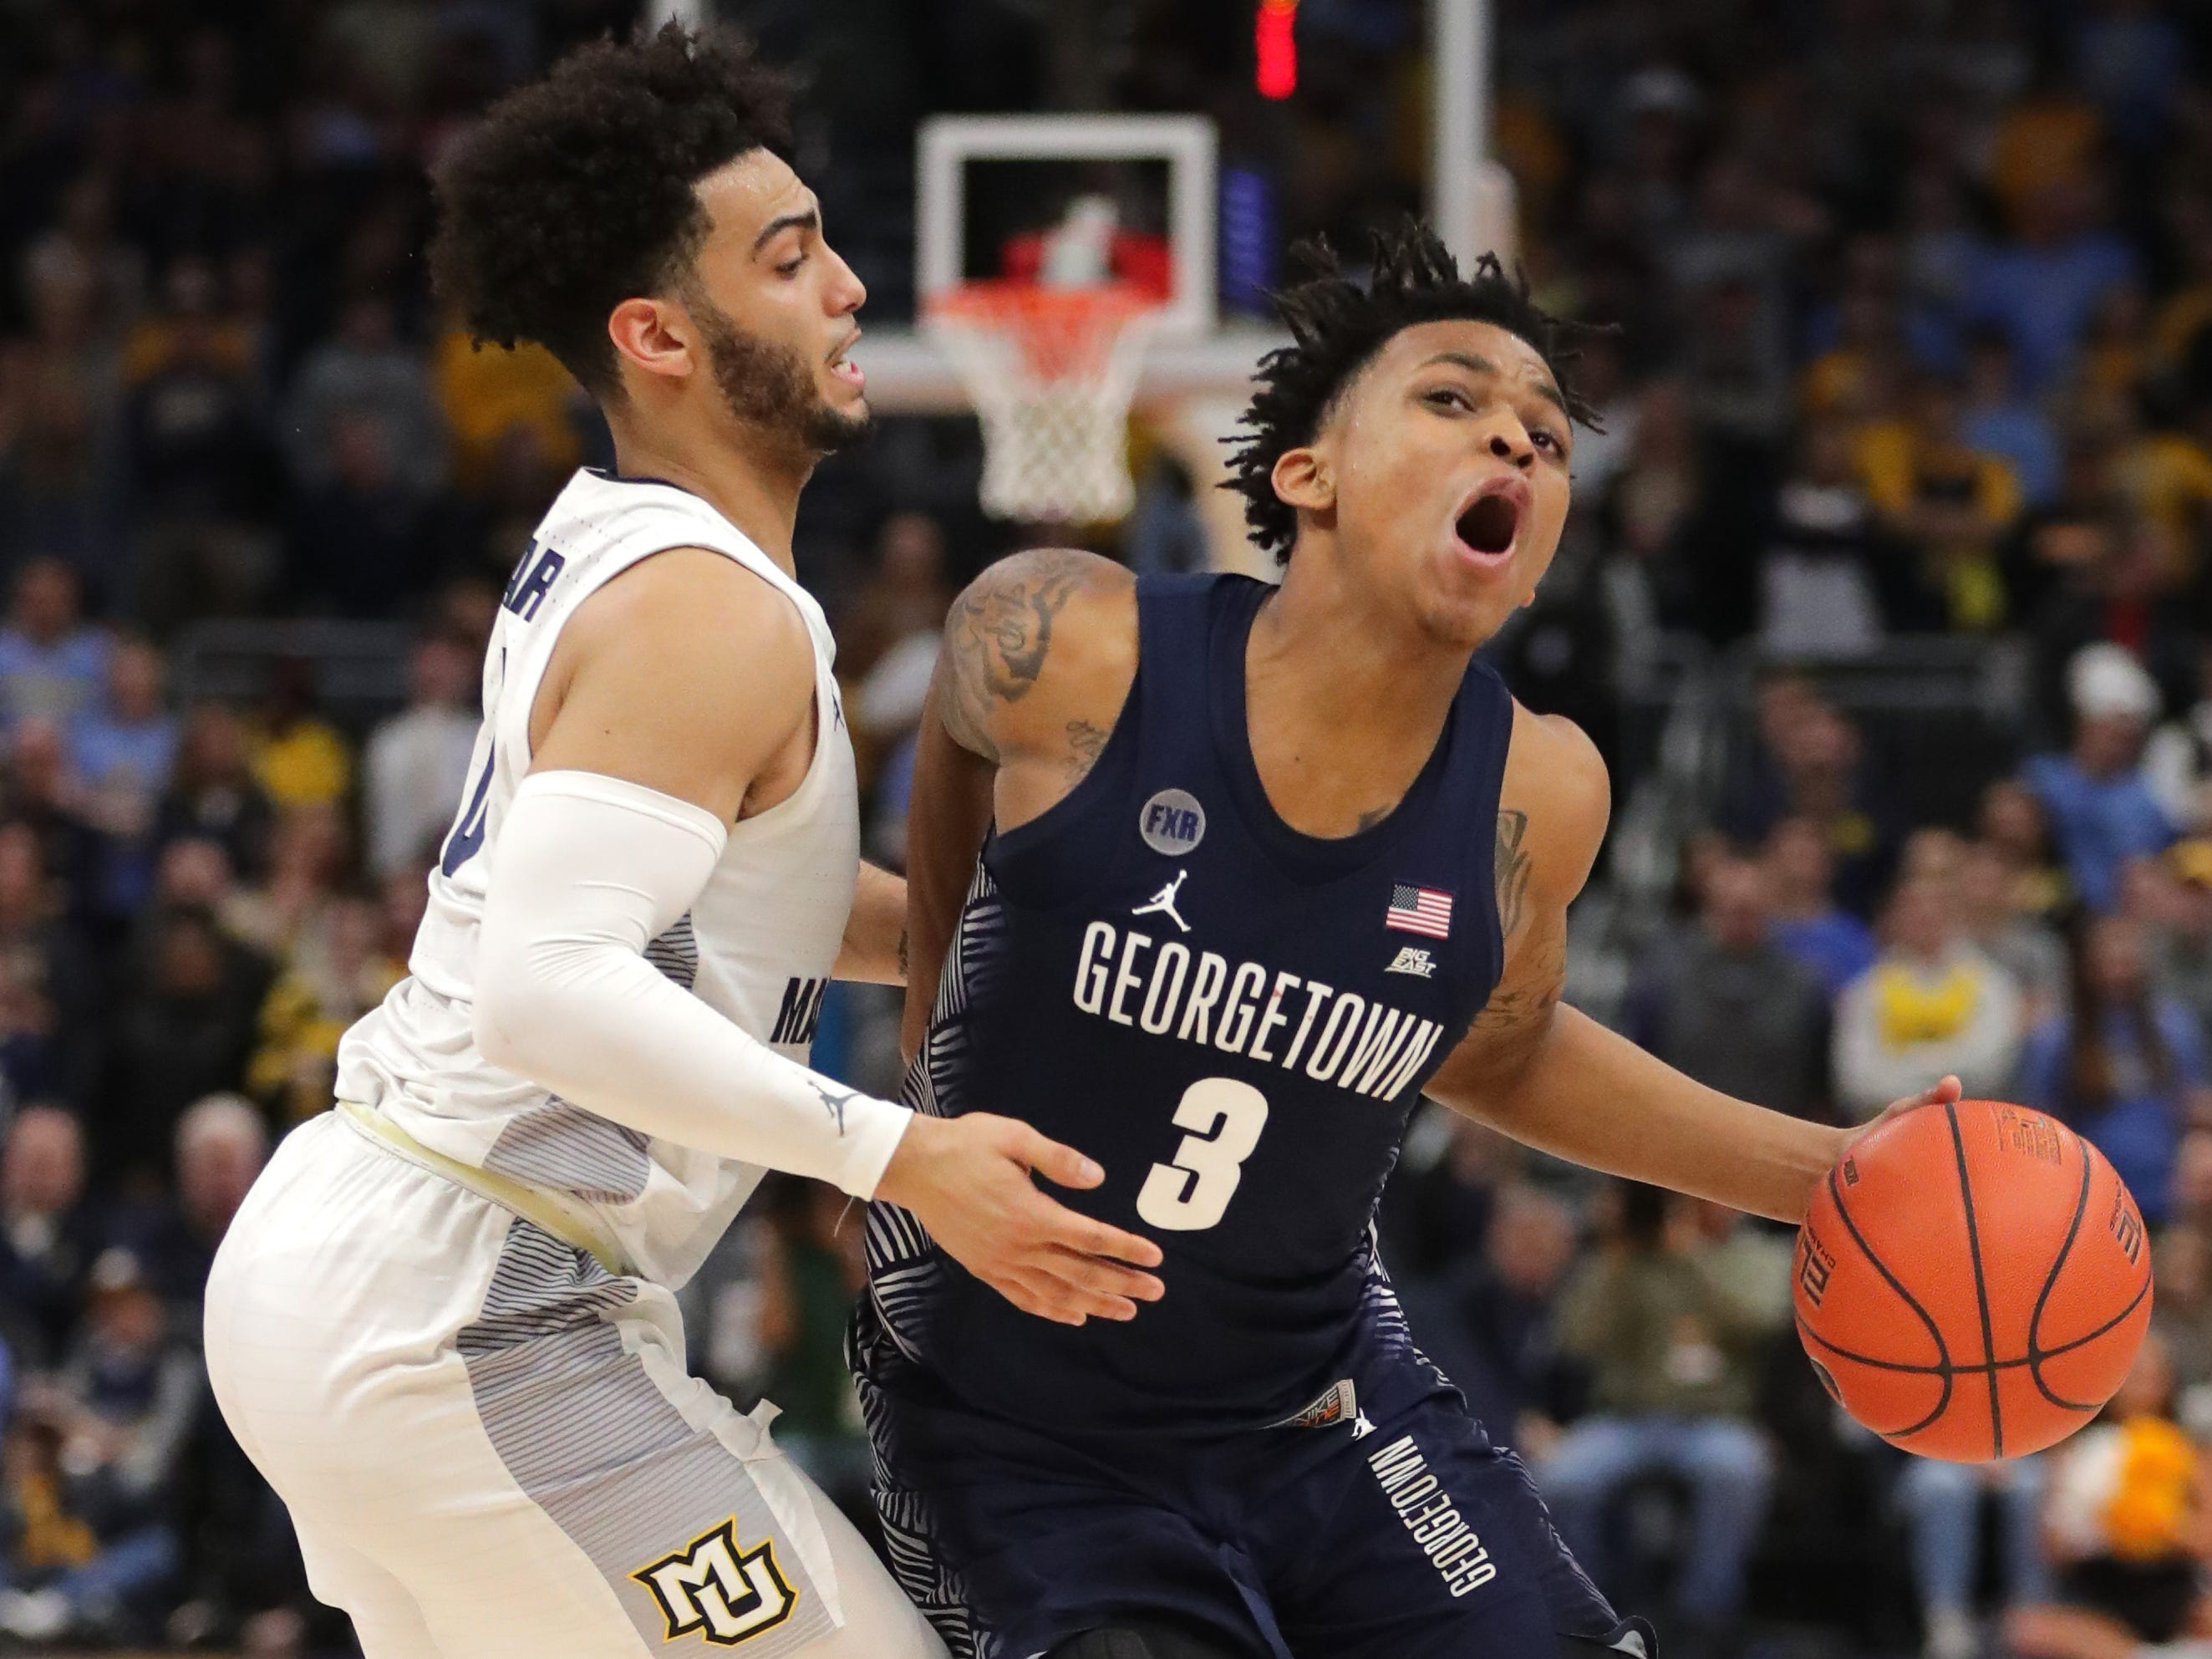 Marquette guard Markus Howard fouls Georgetown guard James Akinjo during the second half.